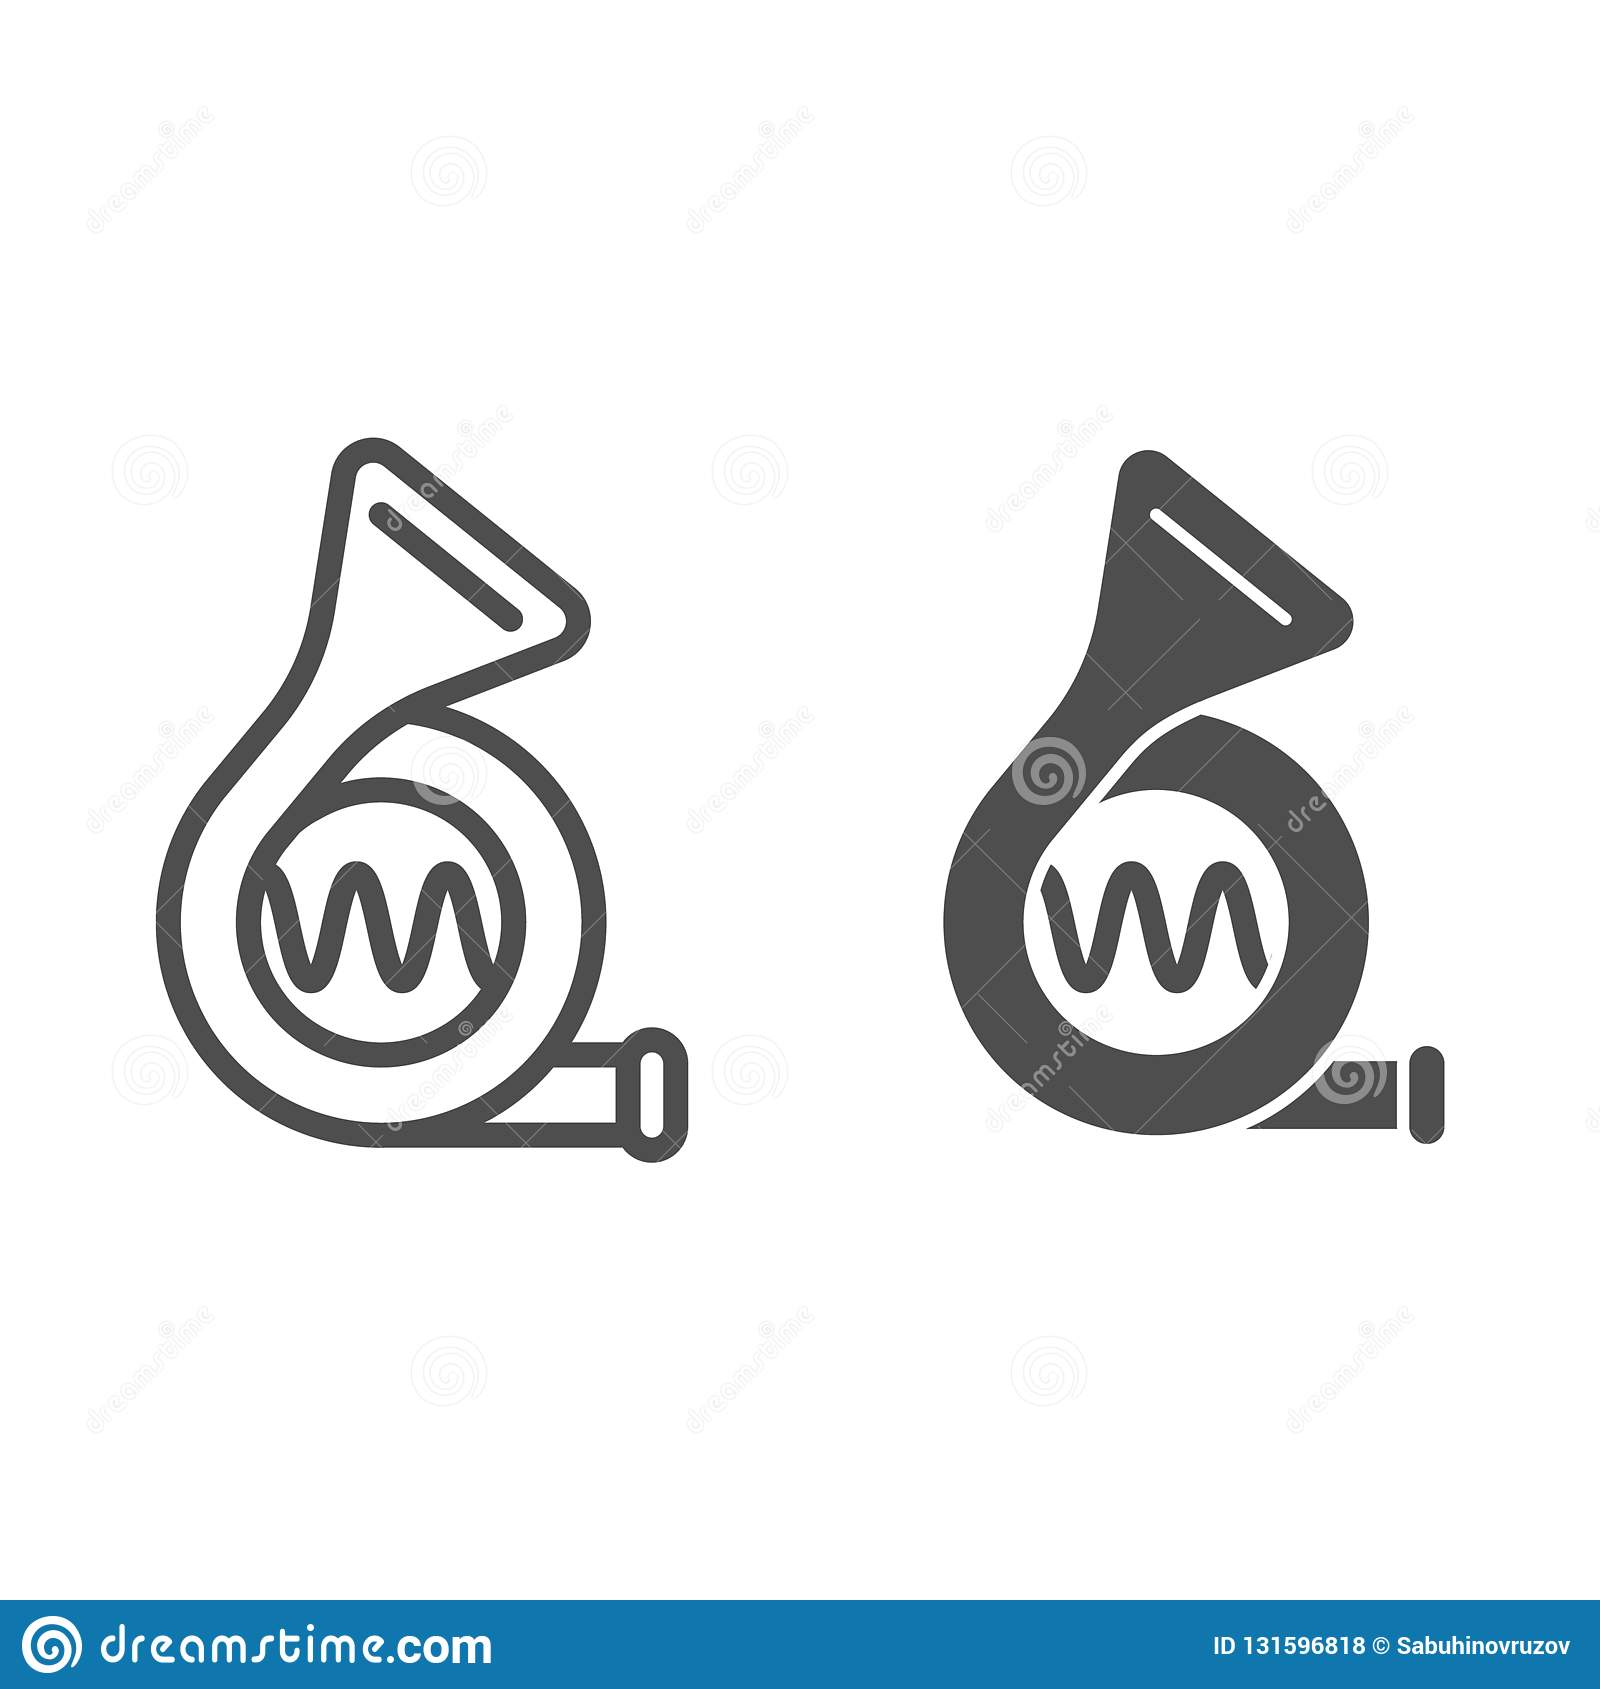 Car Beep Line And Glyph Icon Signal Vector Illustration Isolated On White Klaxon Outline Style Design Designed For Stock Vector Illustration Of Design Brass 131596818